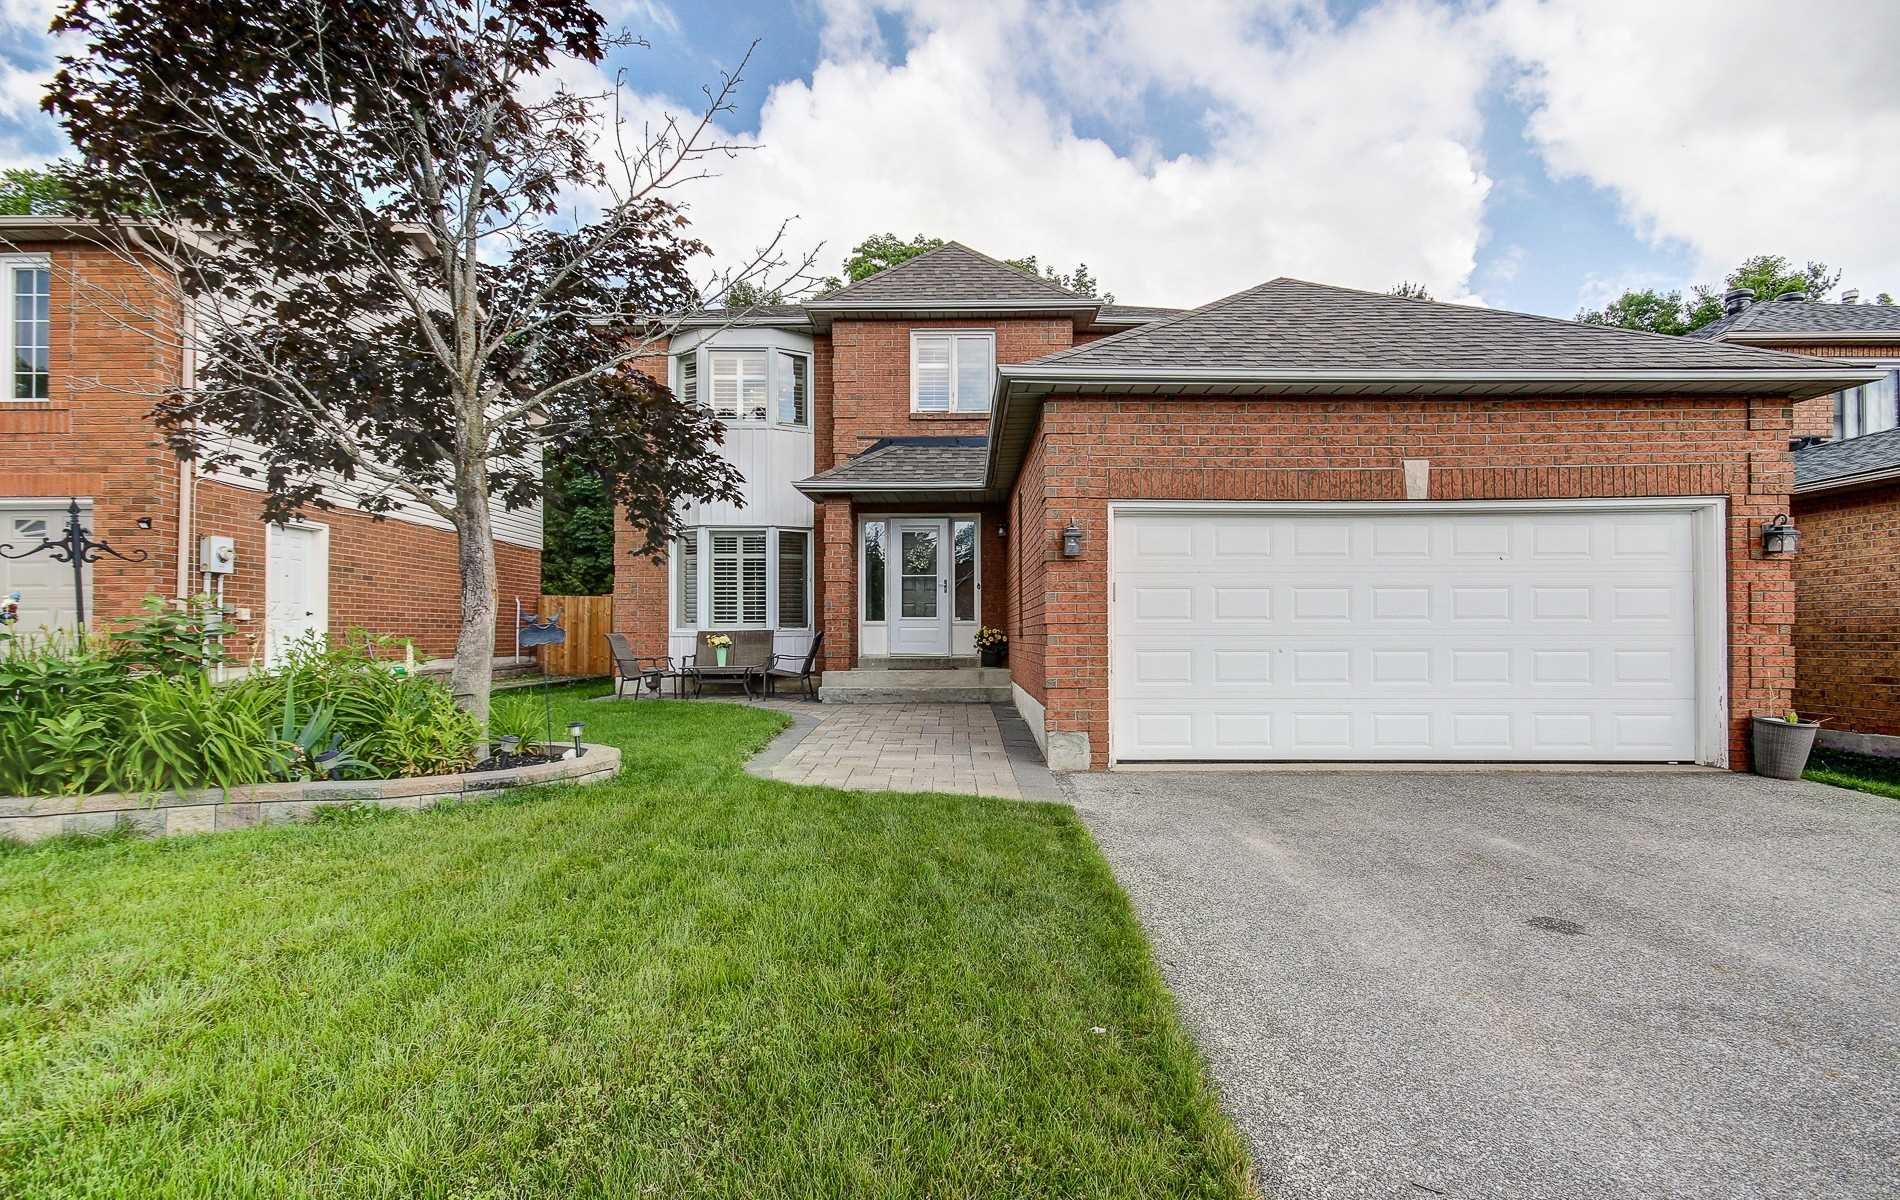 For Sale: 18 Frontier Avenue, Orillia, ON | 4 Bed, 3 Bath House for $489900.00. See 16 photos!